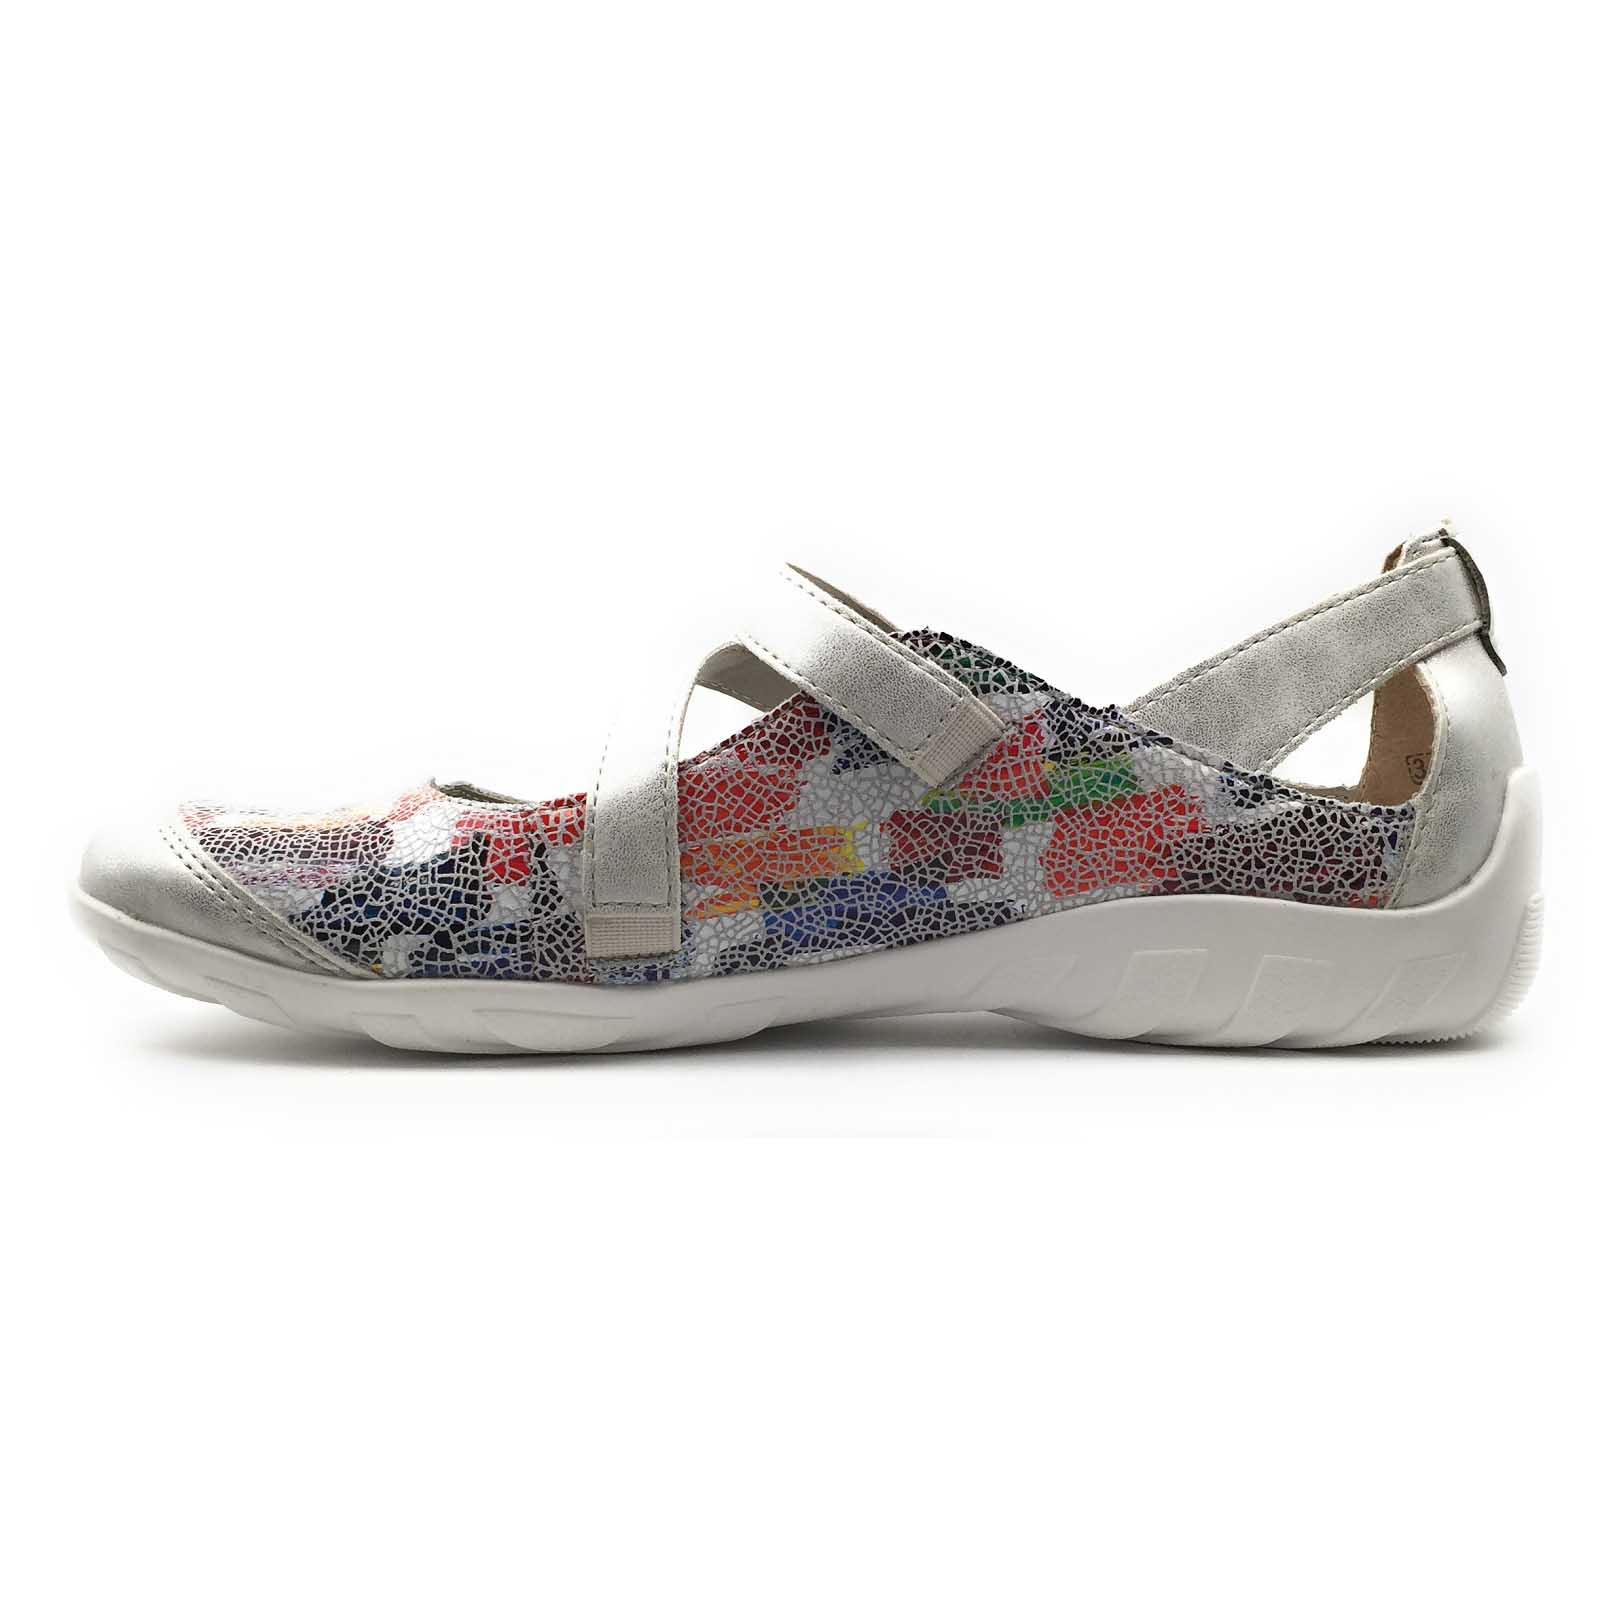 Remonte mary janes r3427 multicolore8018203_6